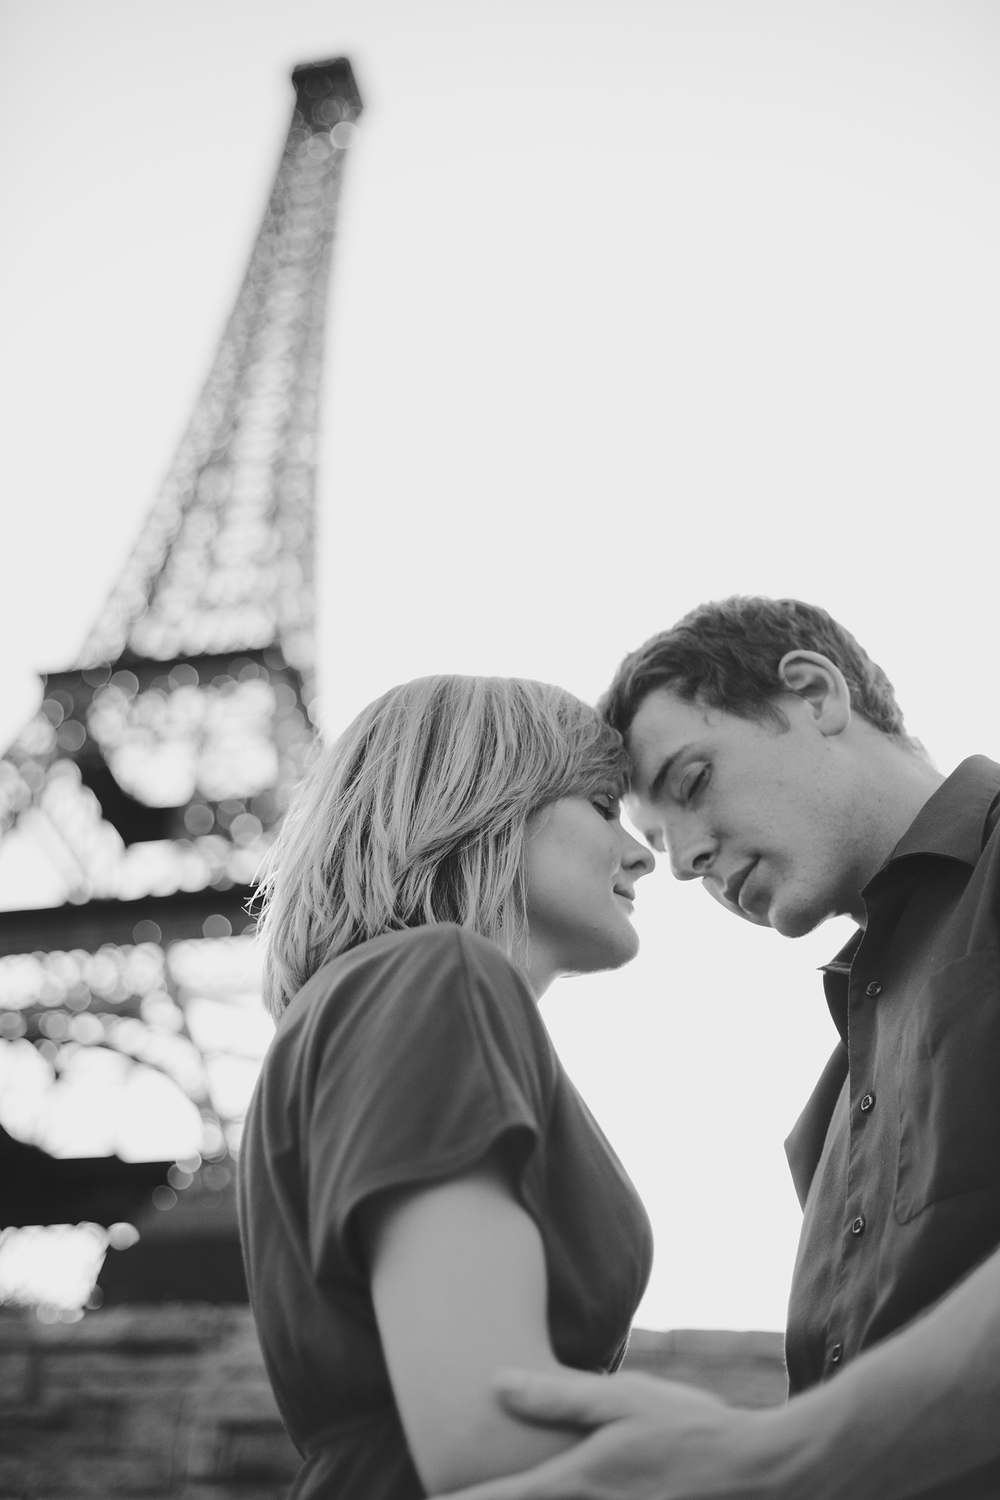 Black & White Couples Photography under the Eiffel Tower